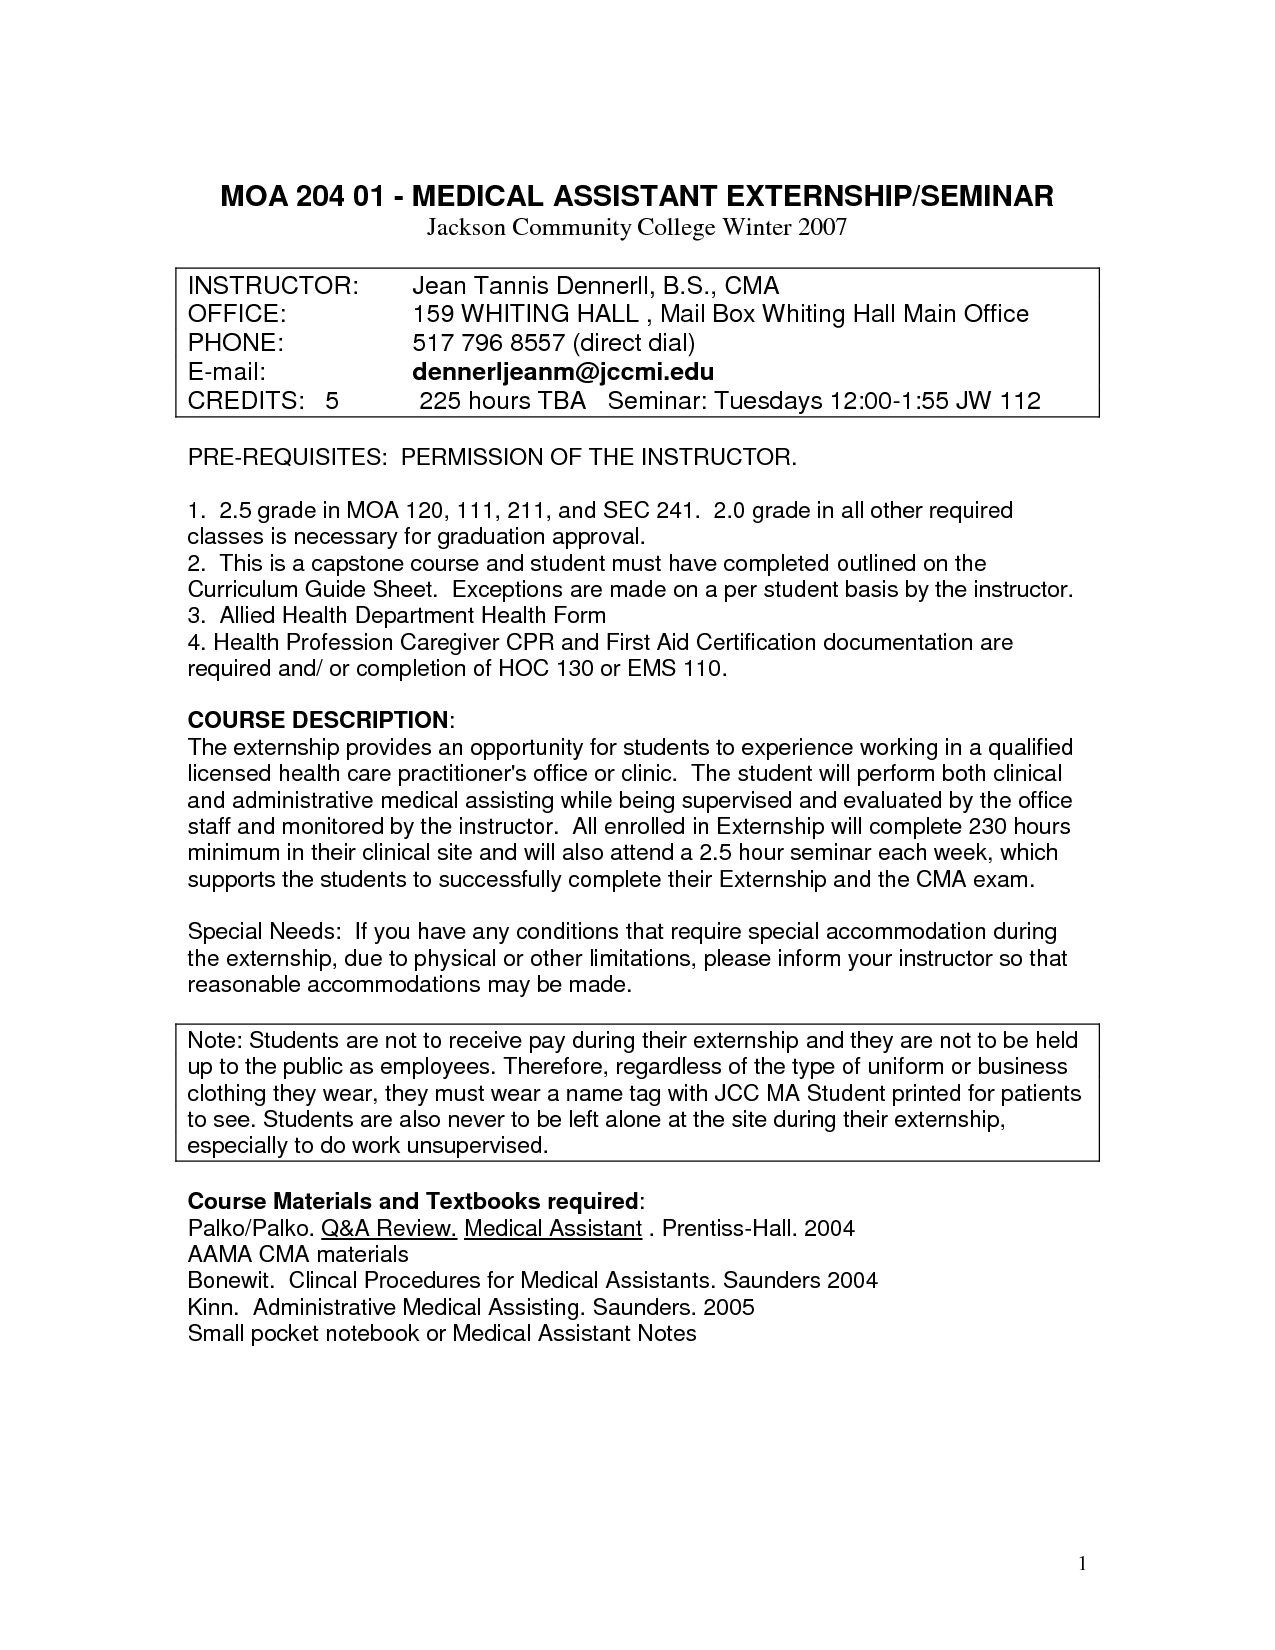 Medical assistant Cover Letter Template - Sample Resume for Medical assistant Cover Letter for Medical